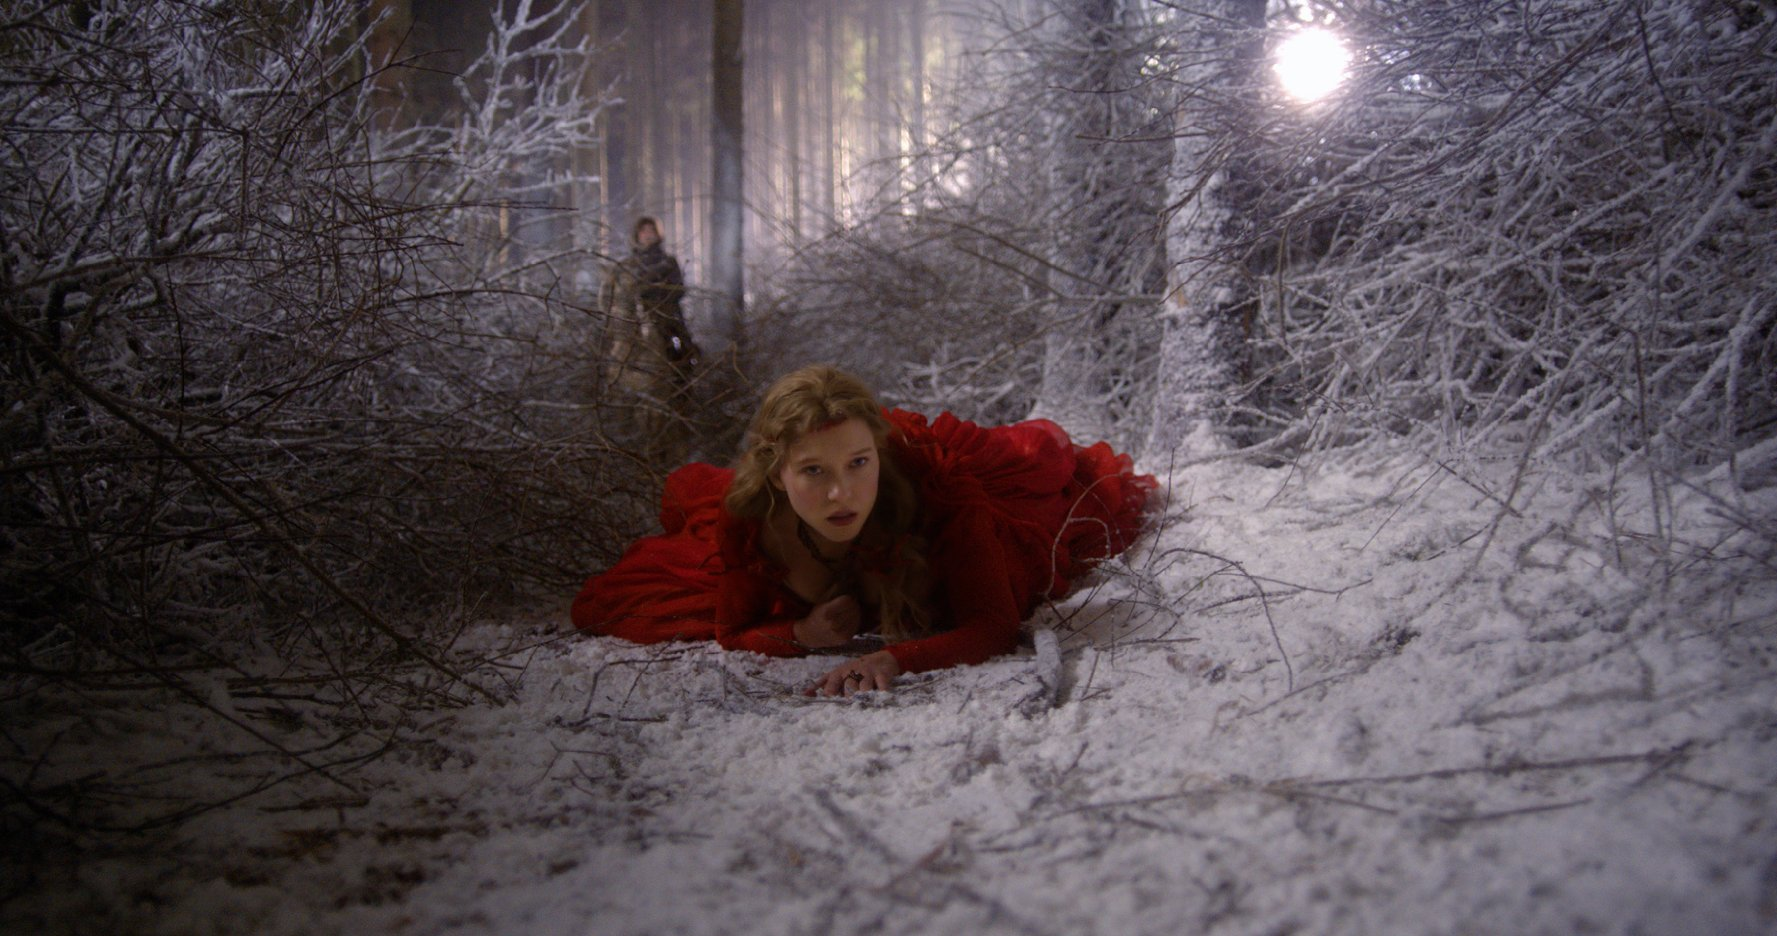 Beauty And The Beast Review Lea Seydoux Stars In Baffling Fairy Tale Indiewire